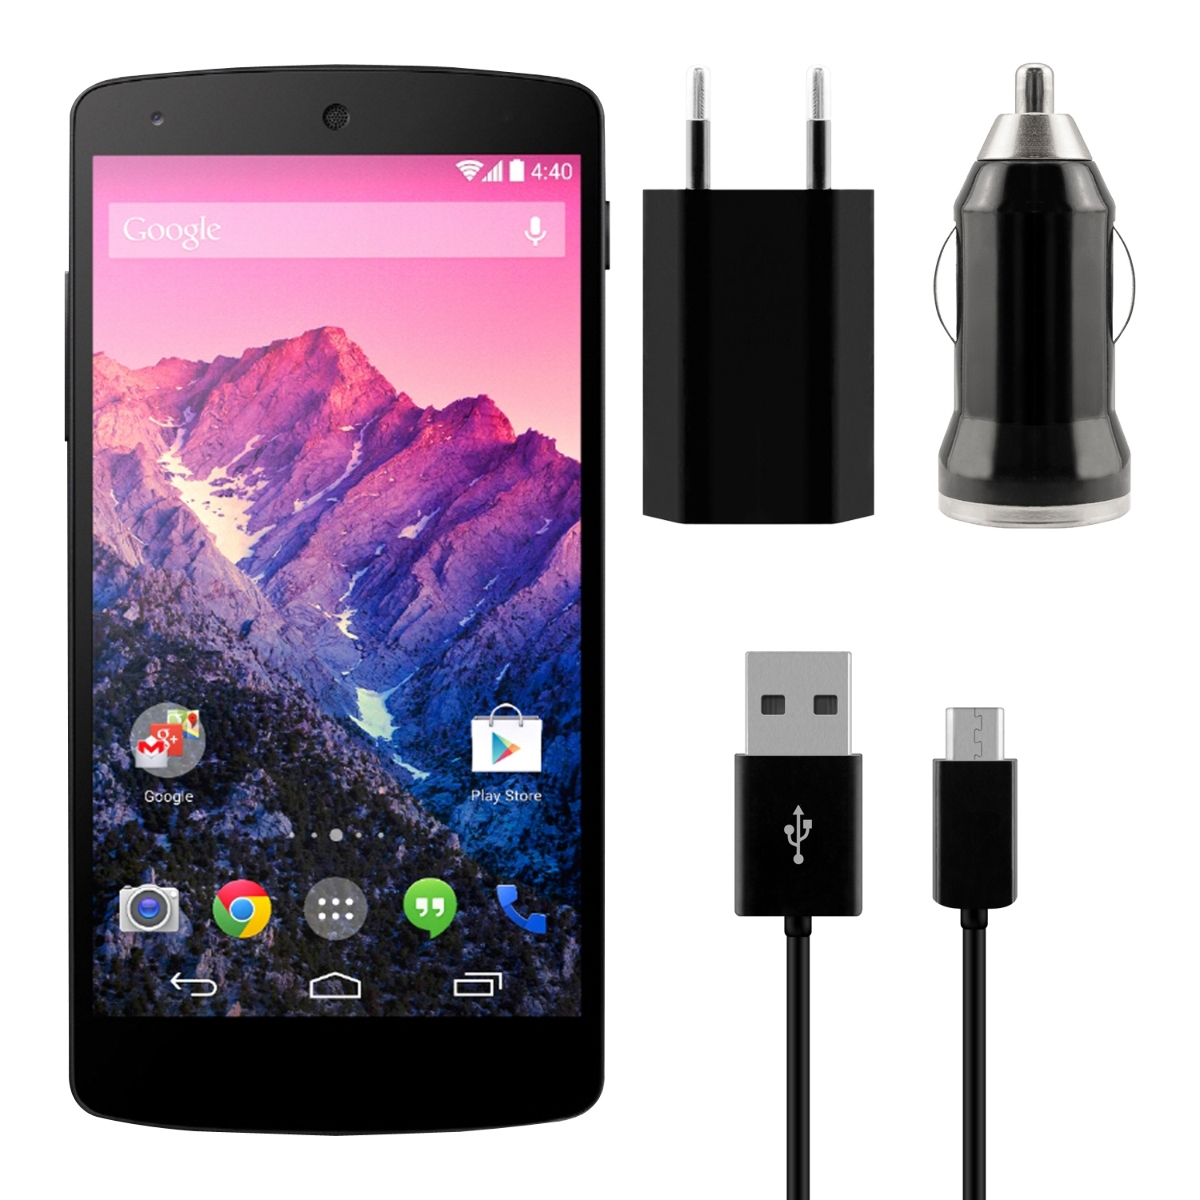 CHARGING-SET-F-LG-GOOGLE-NEXUS-5-POWER-PLUG-ADAPTER-USB-CABLE-CAR-CHARGER-MICRO